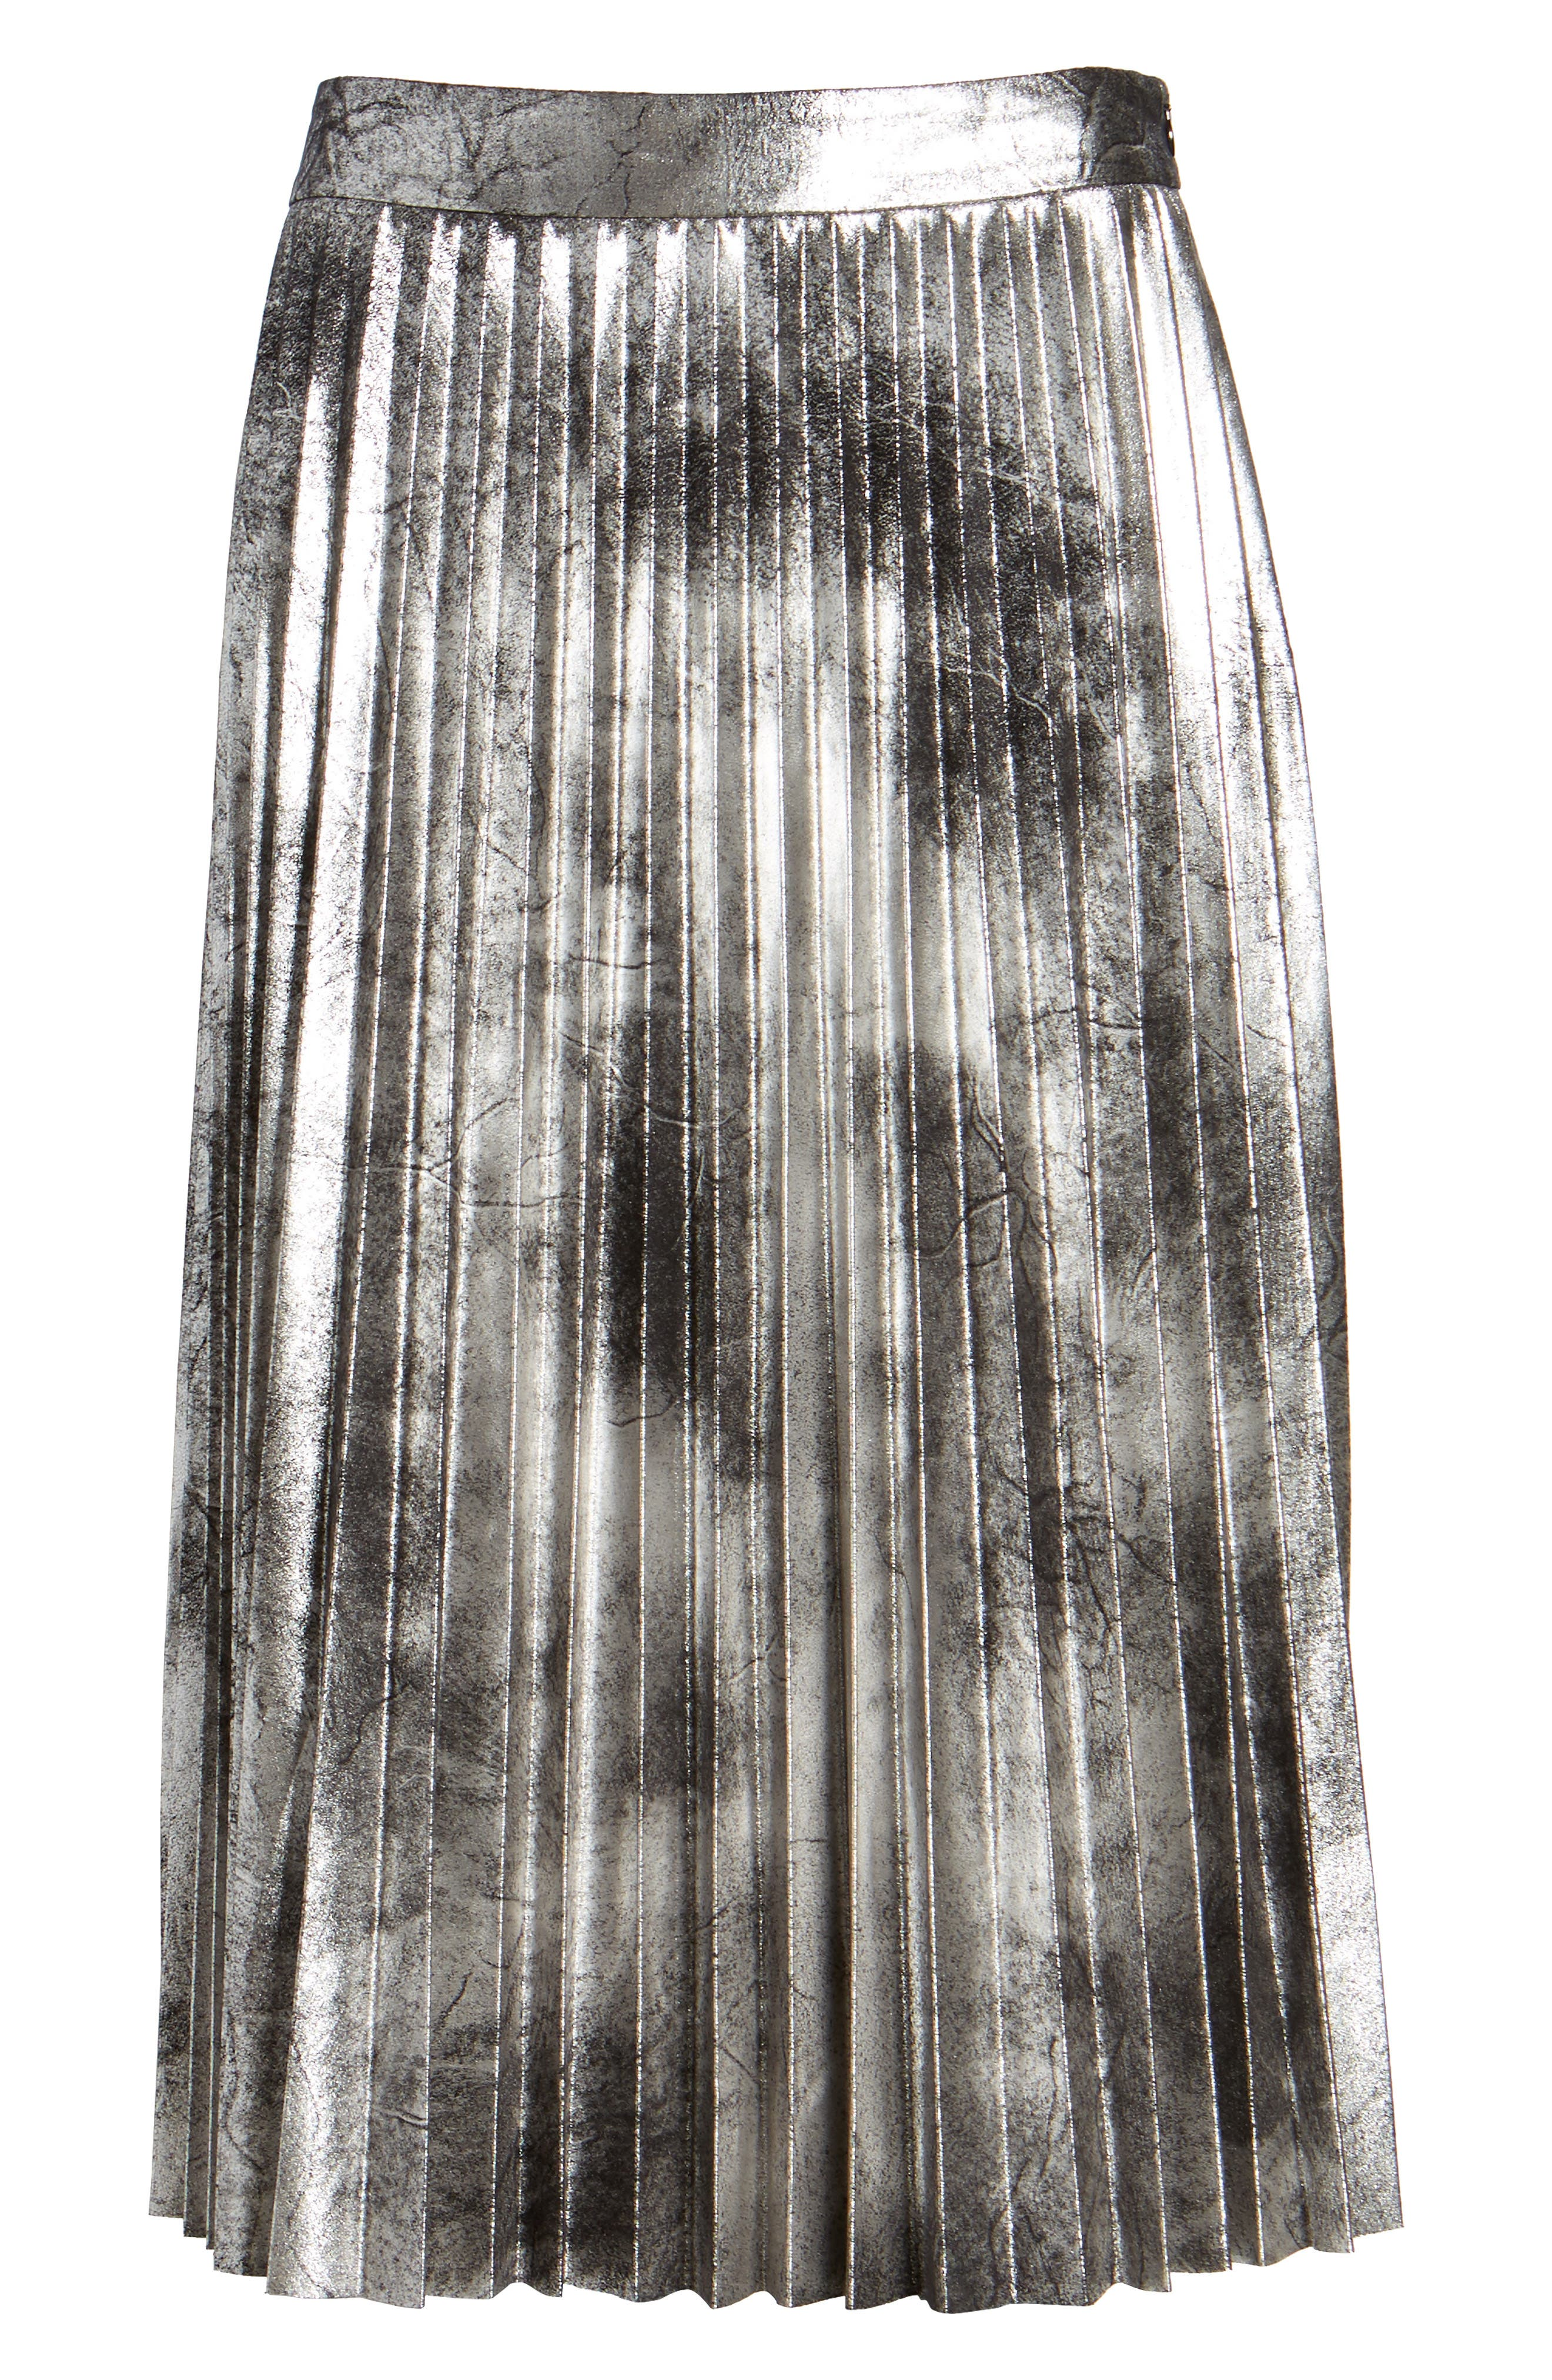 Metallic Pleated Skirt,                             Alternate thumbnail 6, color,                             001